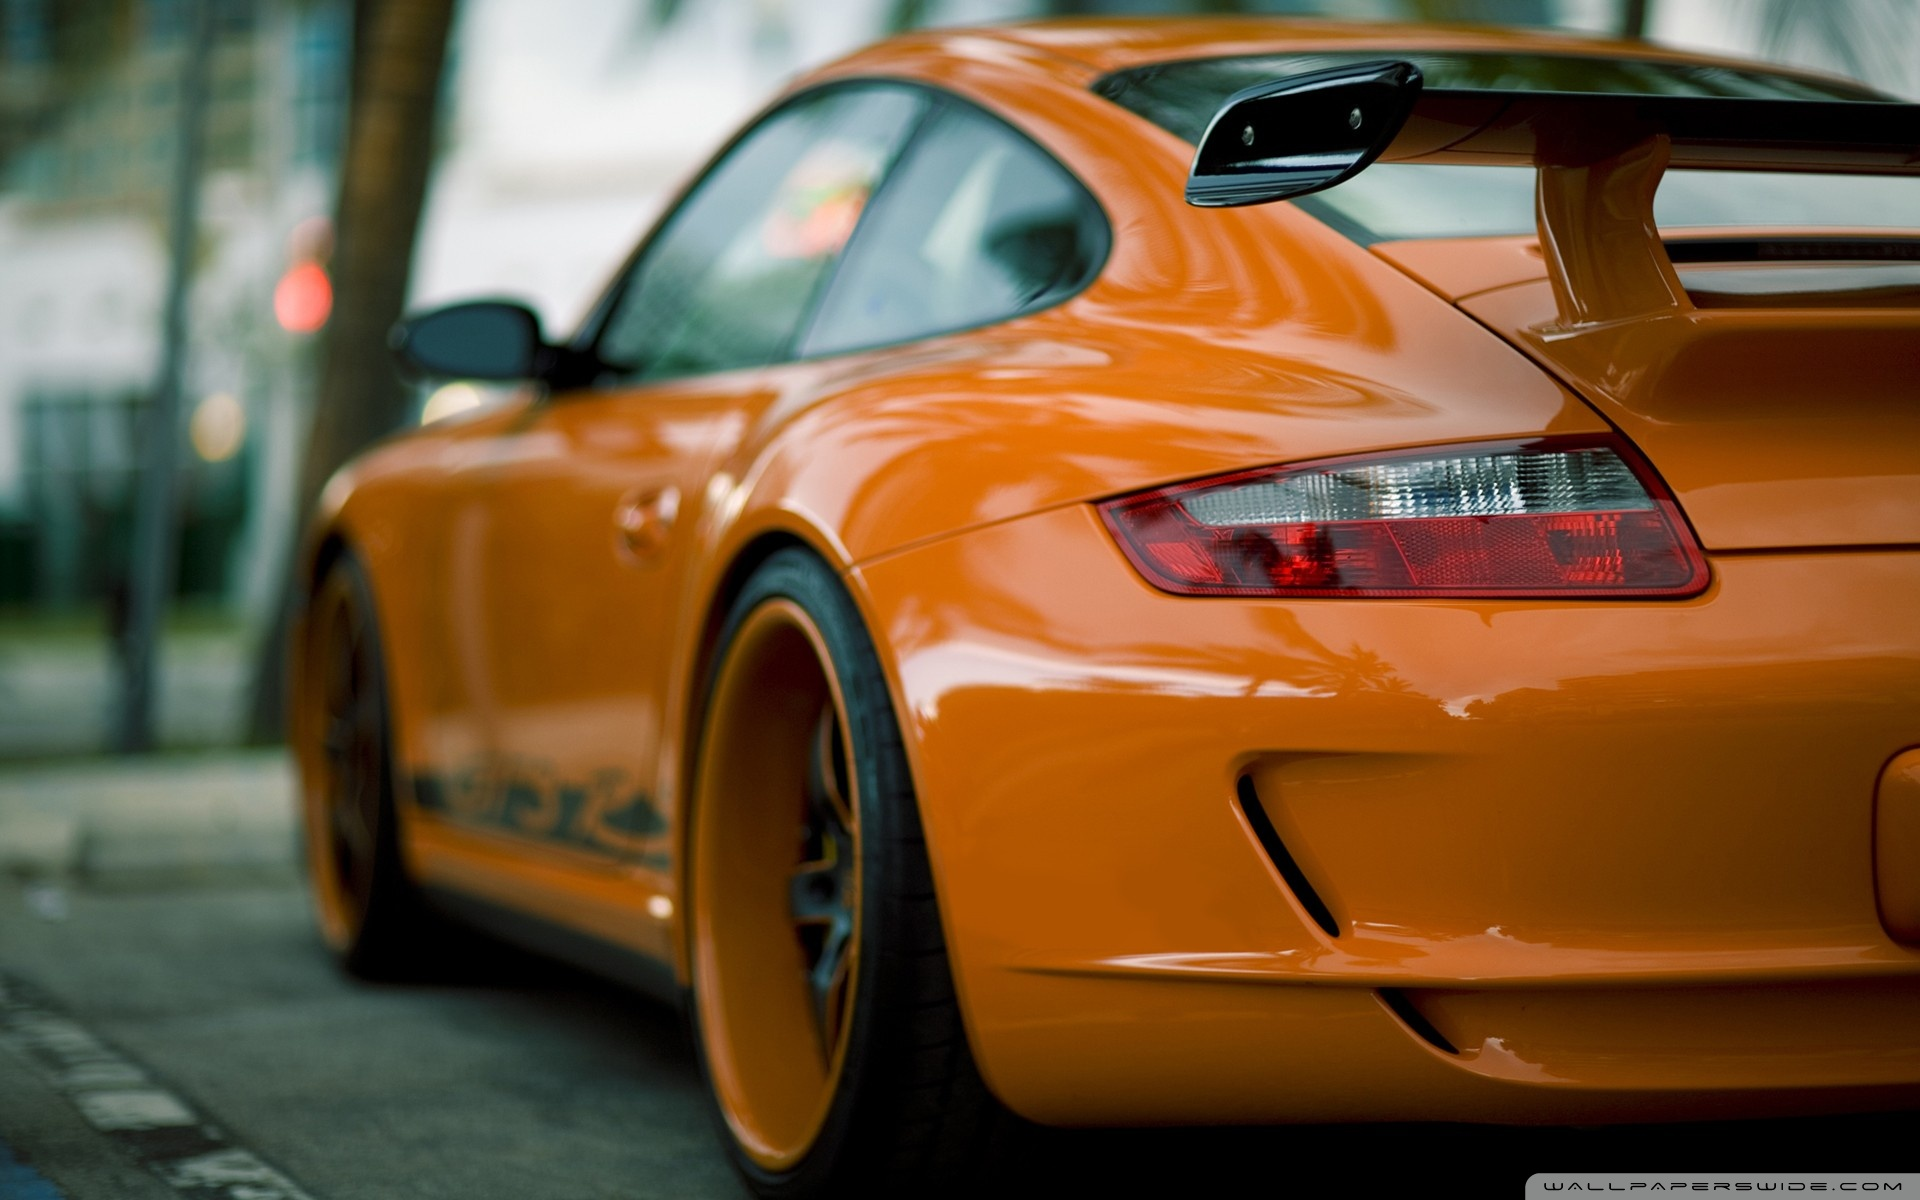 Orange Porsche Wallpaper